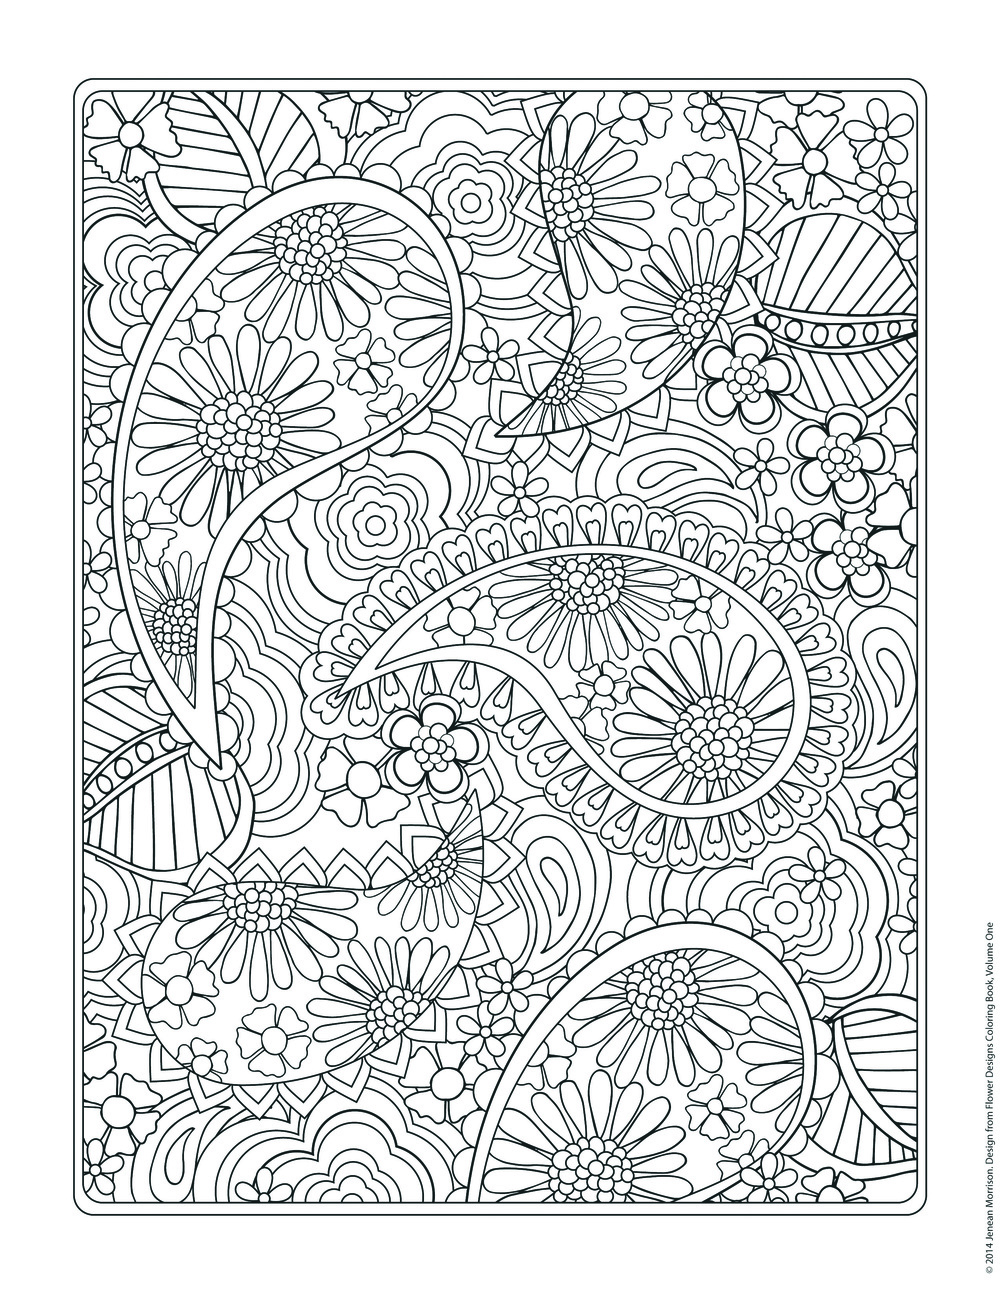 Whimsical designs coloring book - Free Coloring Page From Jenean Morrison S Flower Designs Coloring Book